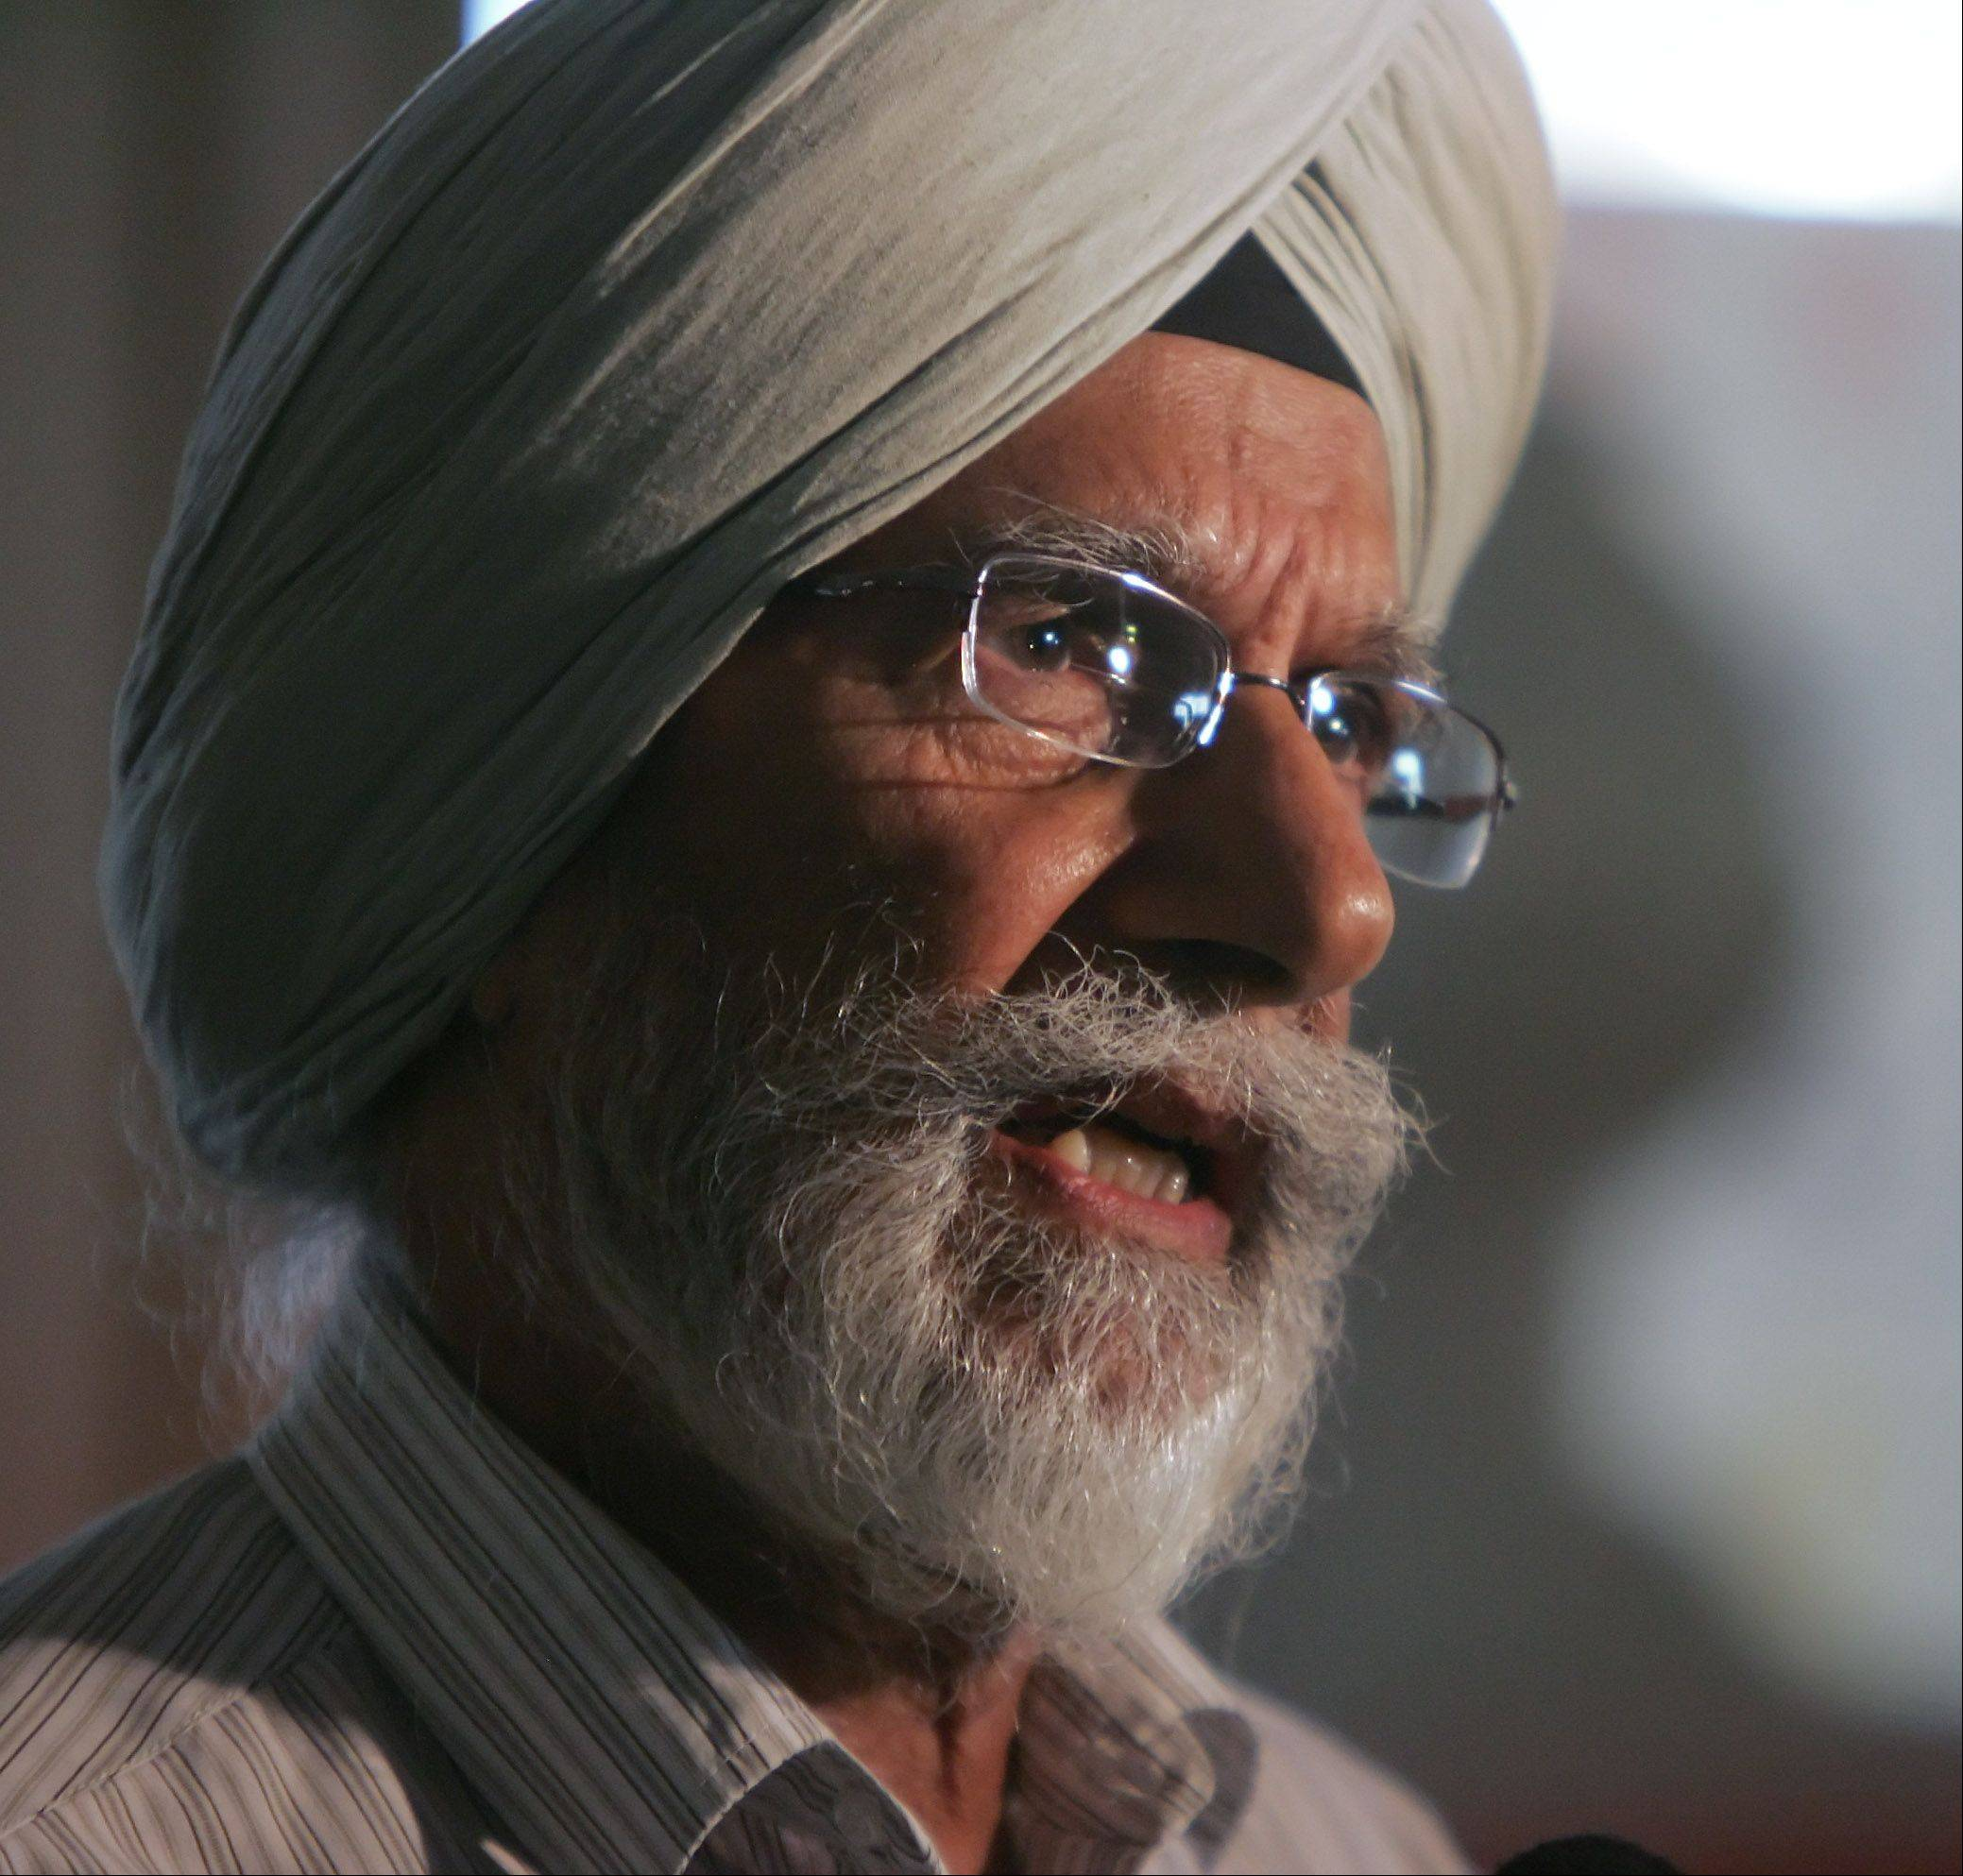 Balwant Singh Hansra, a member of the Gurudawara Sikh Religious Society in Palatine, discusses the shooting at a Sikh temple near Milwaukee Sunday.